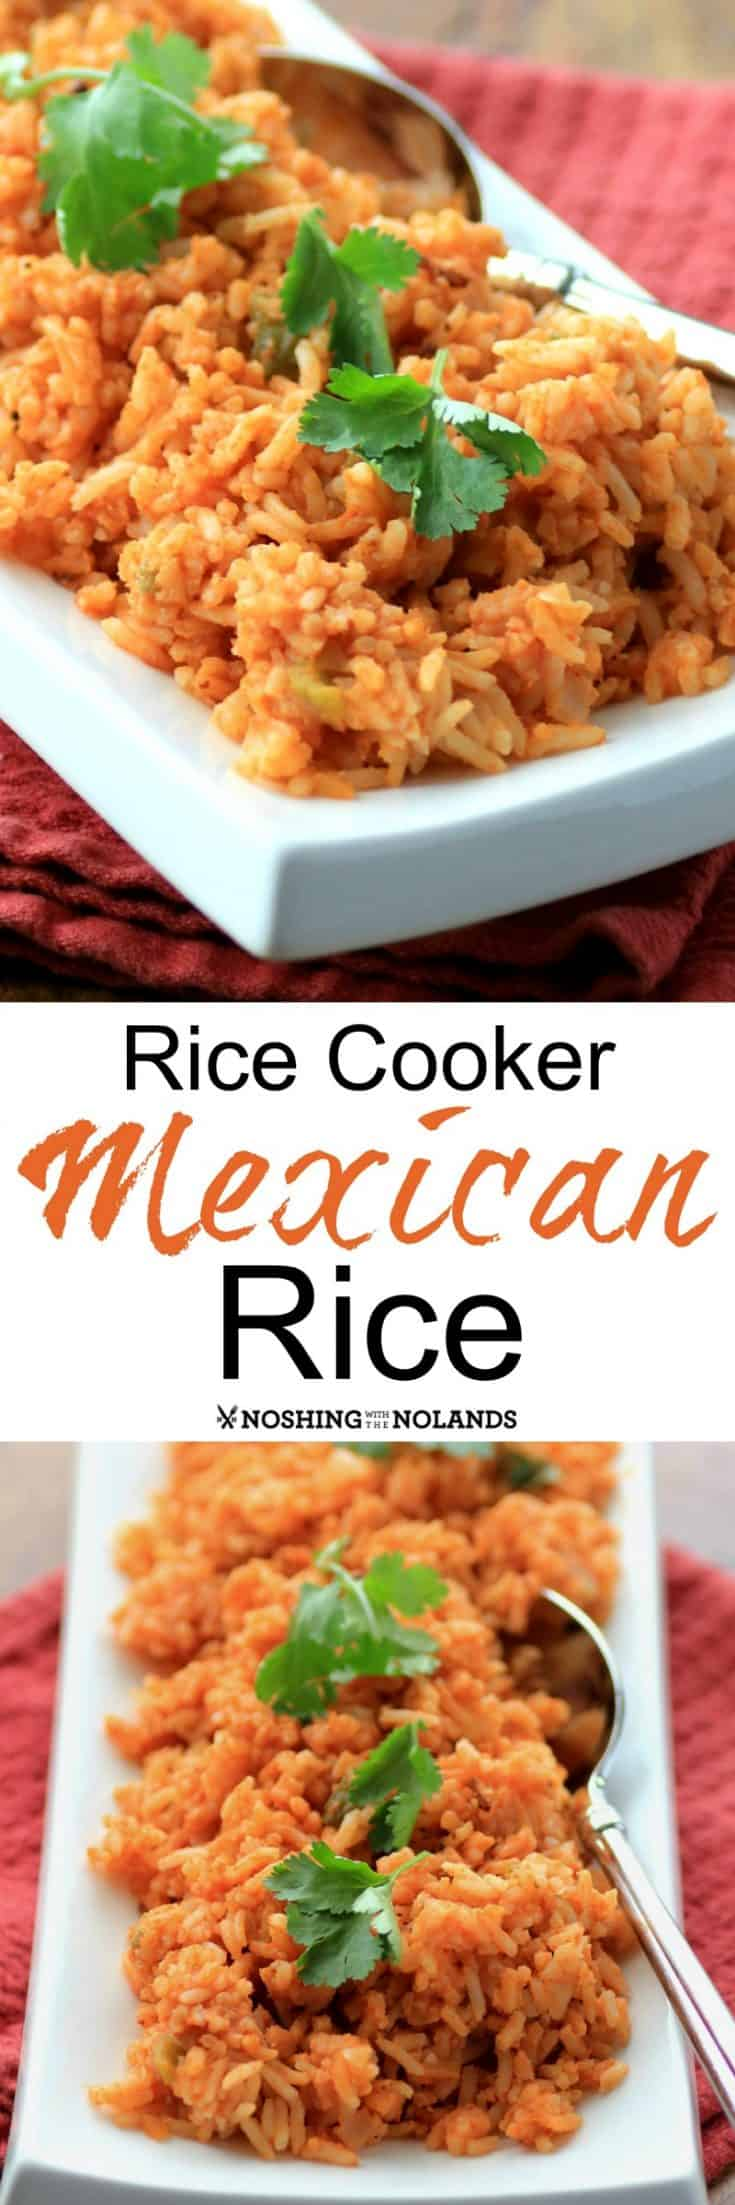 A very easy Mexican side dish that cooks up in your rice cooker. #rice #Mexican #sidedish # ricecooker